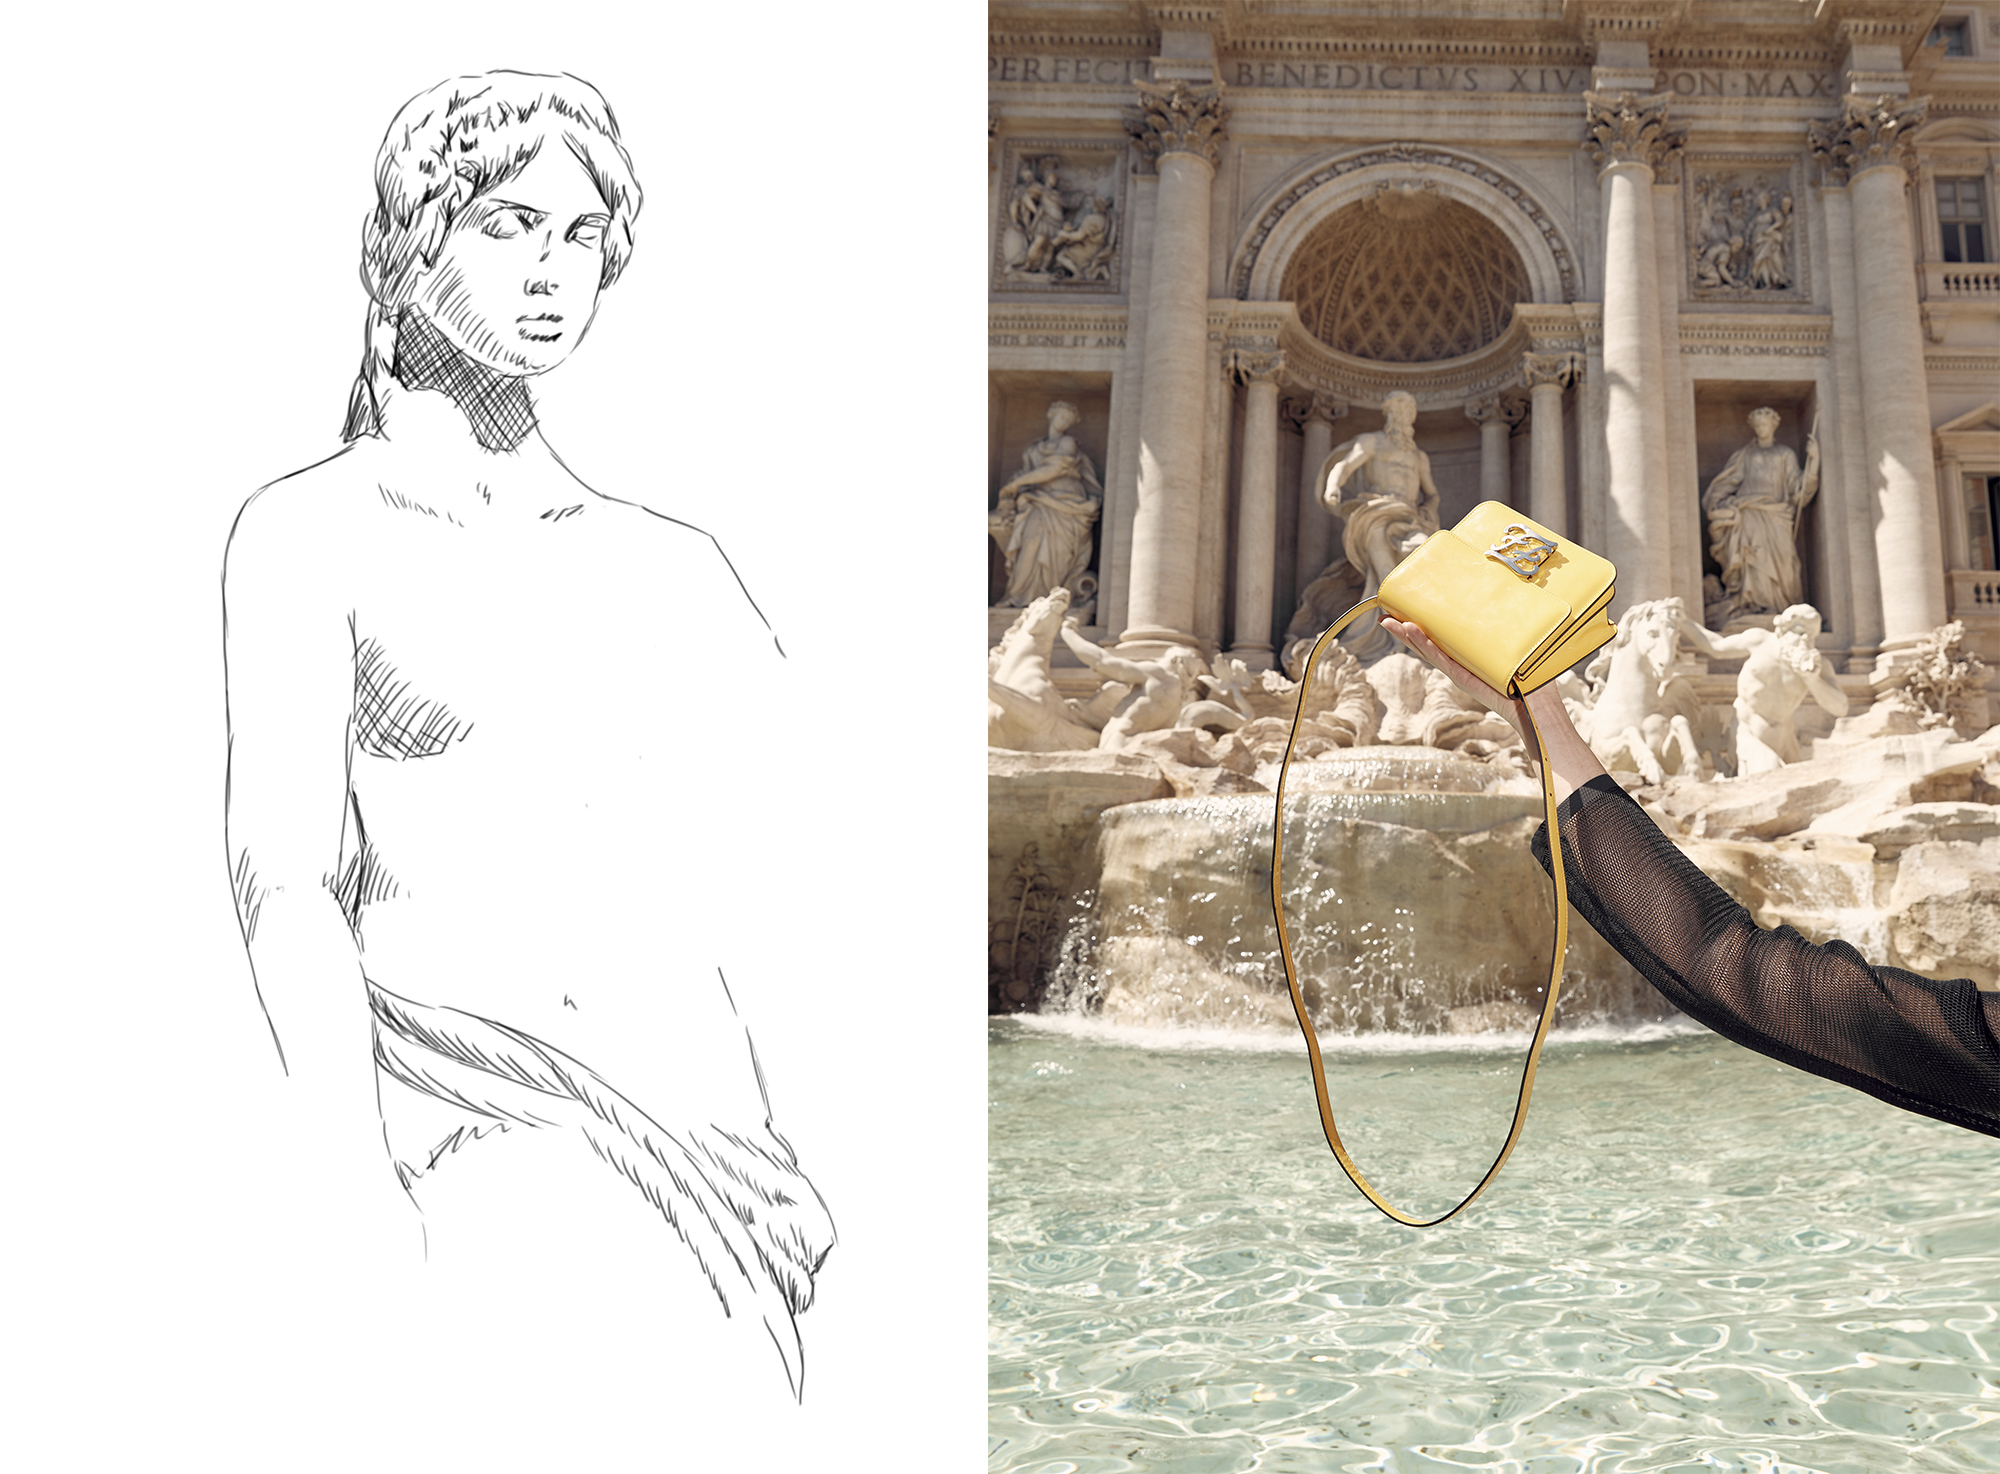 Karligraphy, Bag, Rome, Trevi Fountain, Oracle Fox, Fendi